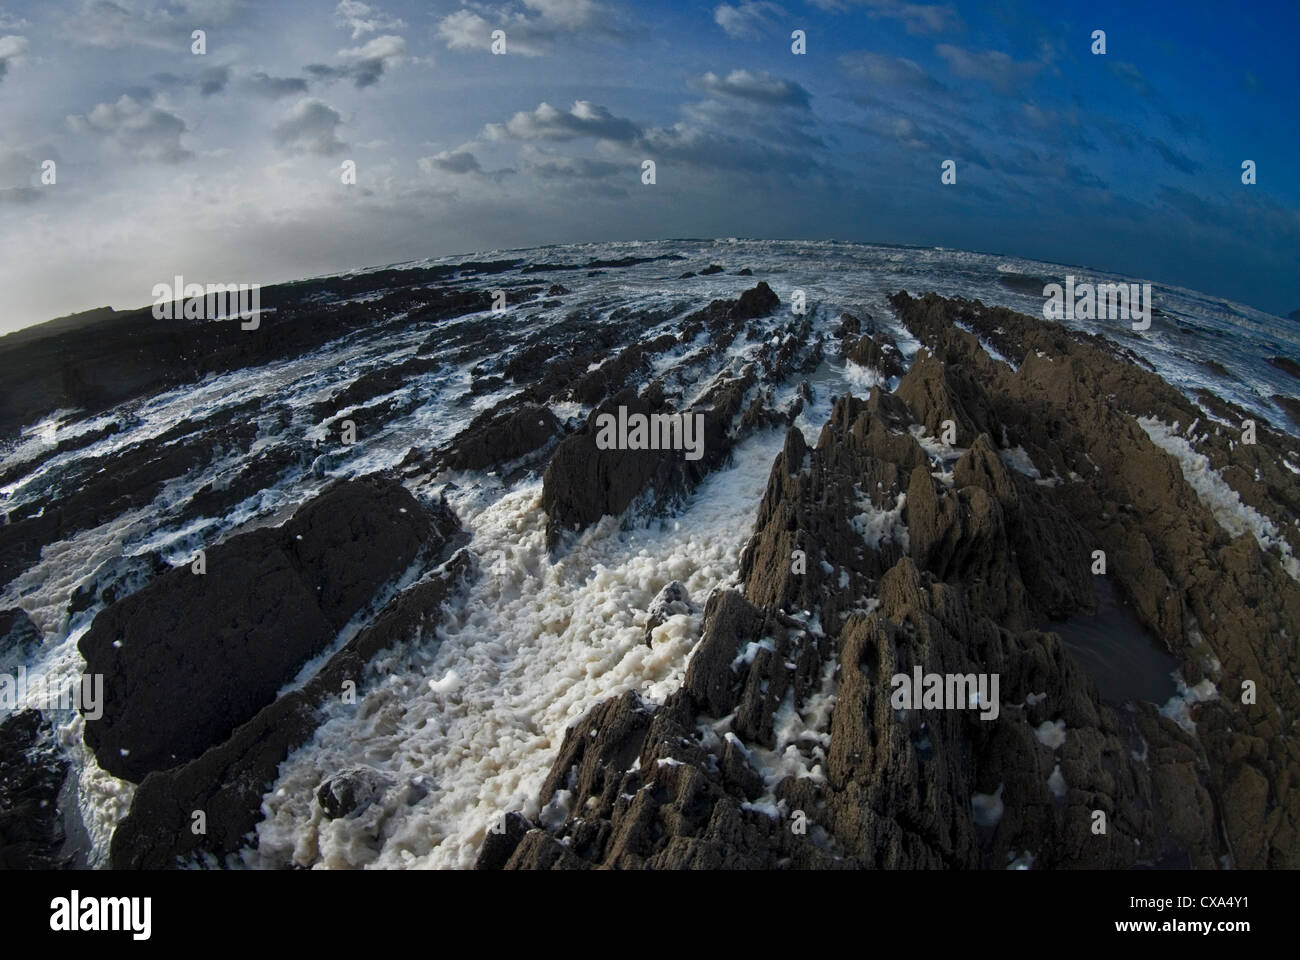 Spume covered rocks during a winter gale. Croyde Beach, North Devon, England. - Stock Image